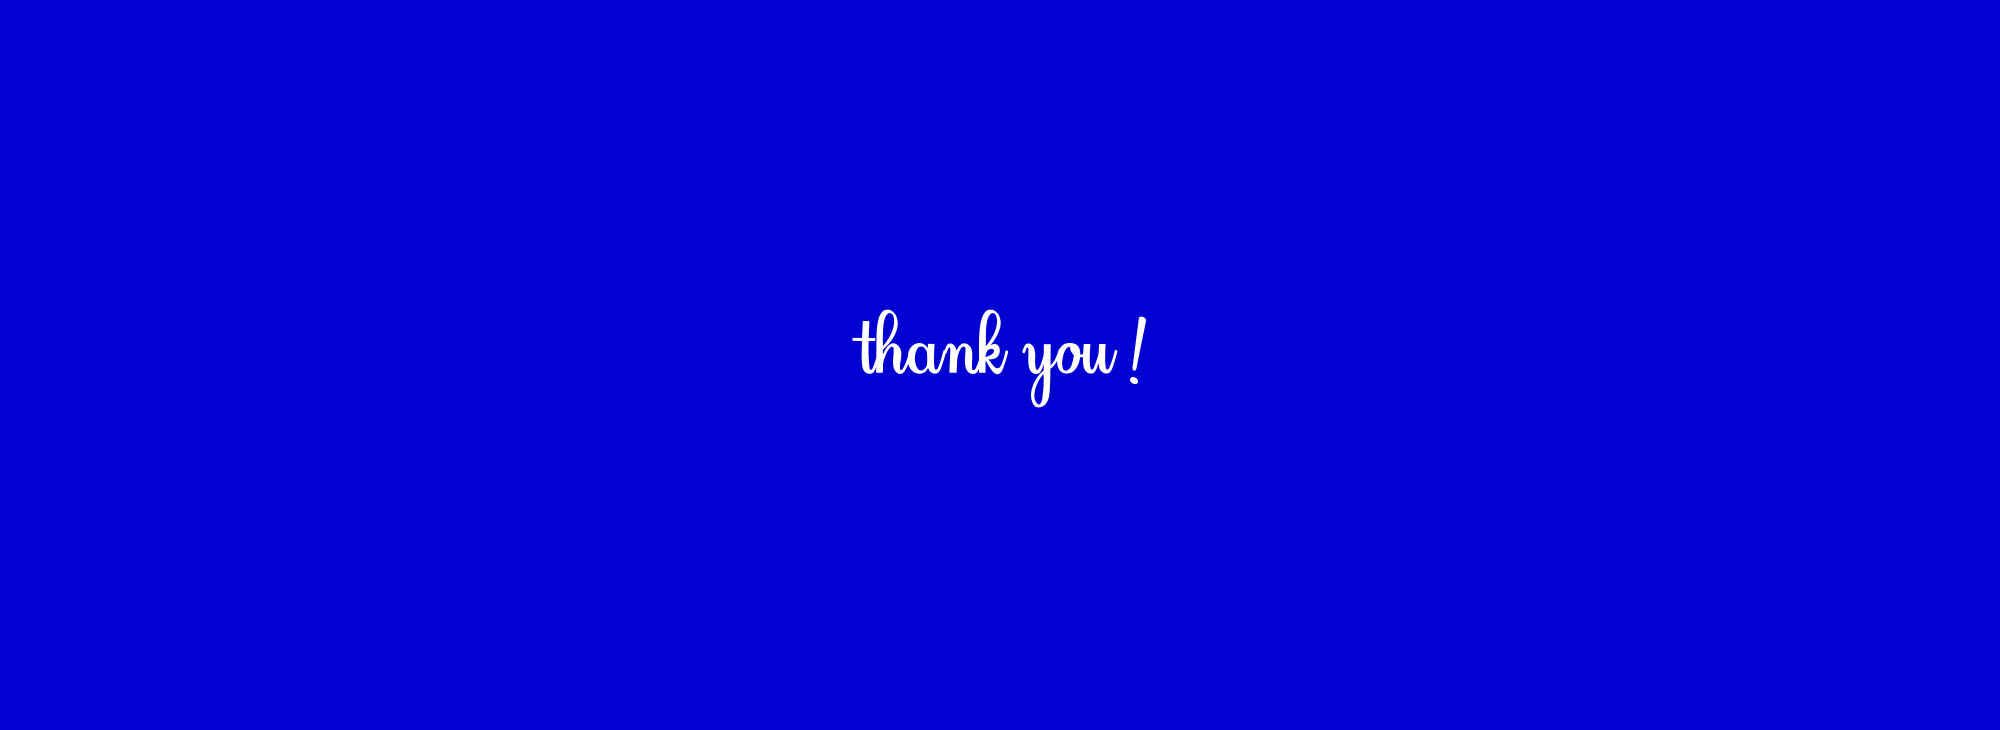 Florence Font - Thank You